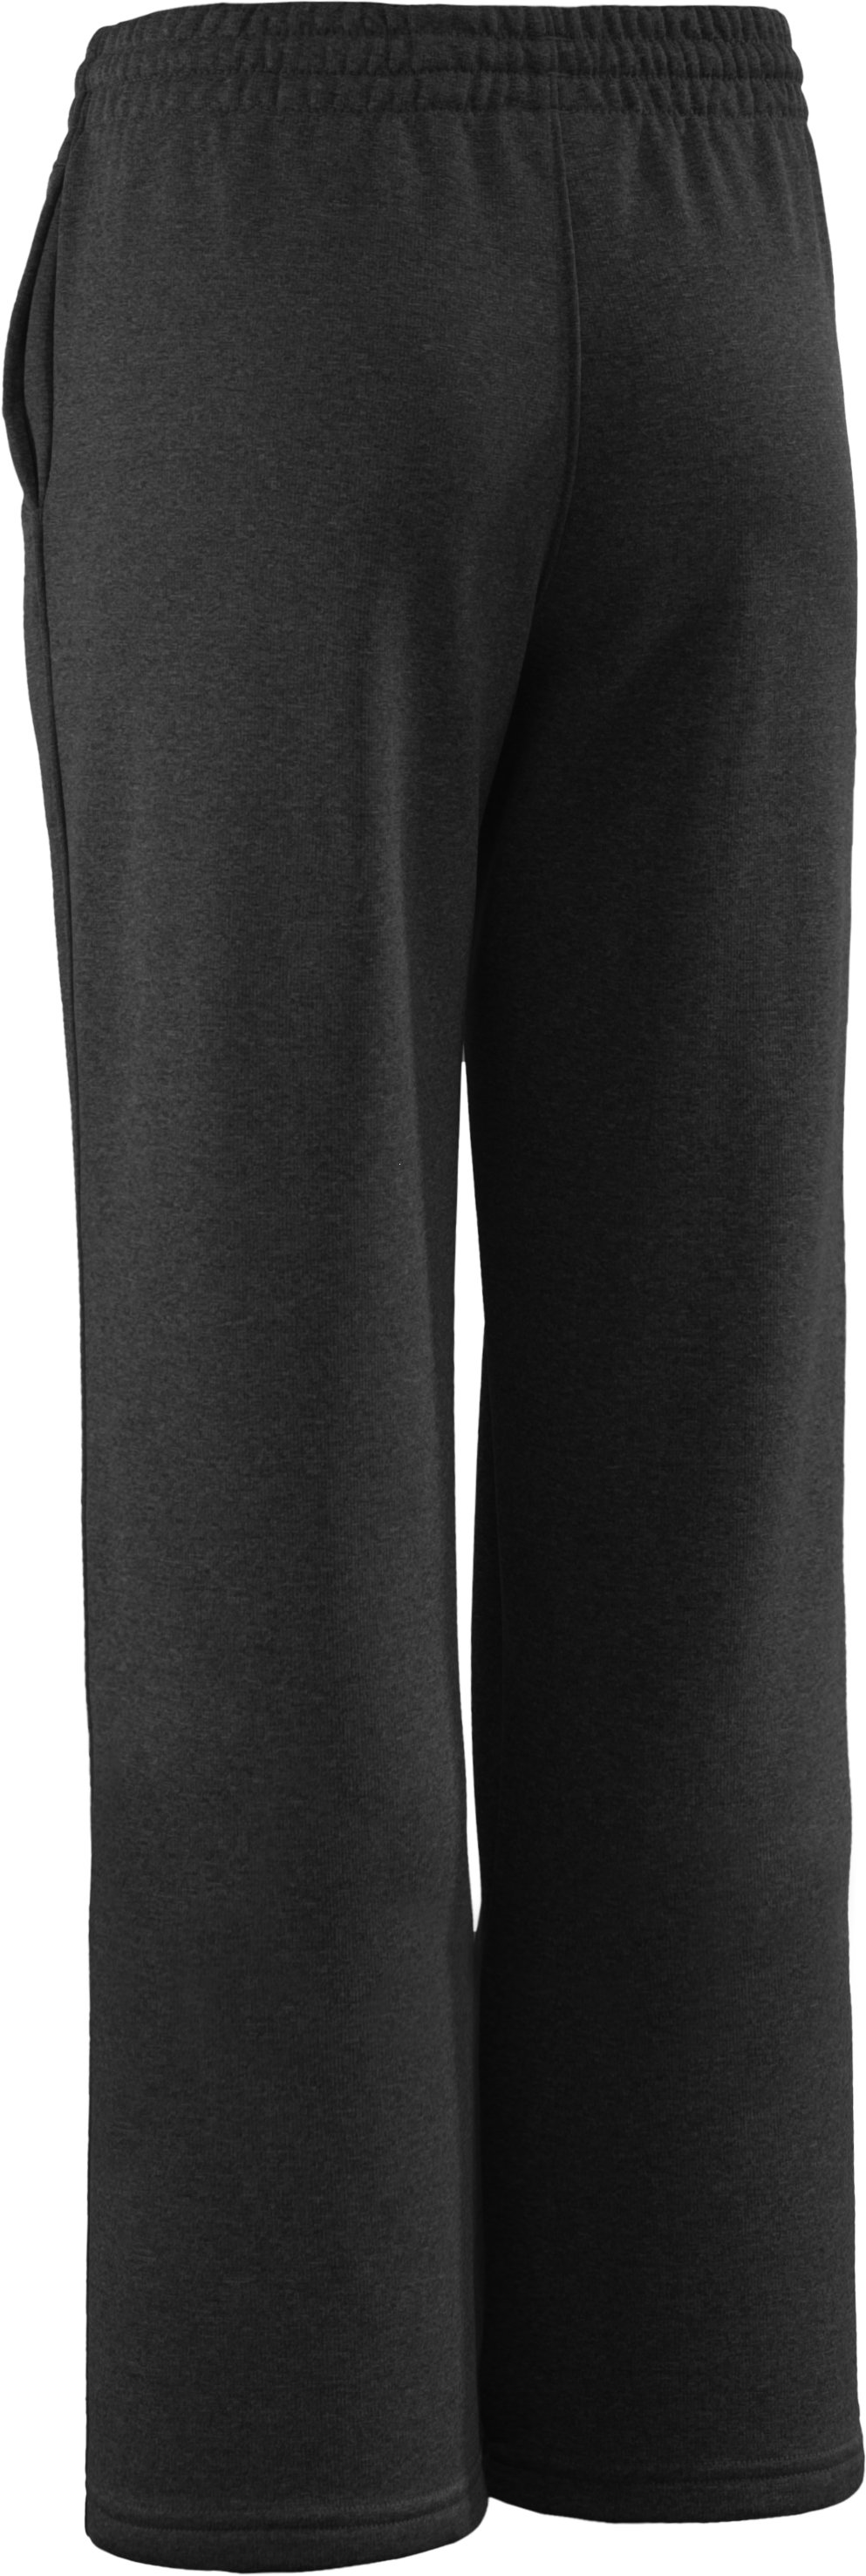 Boys' Armour® Fleece Pants II, Black , undefined